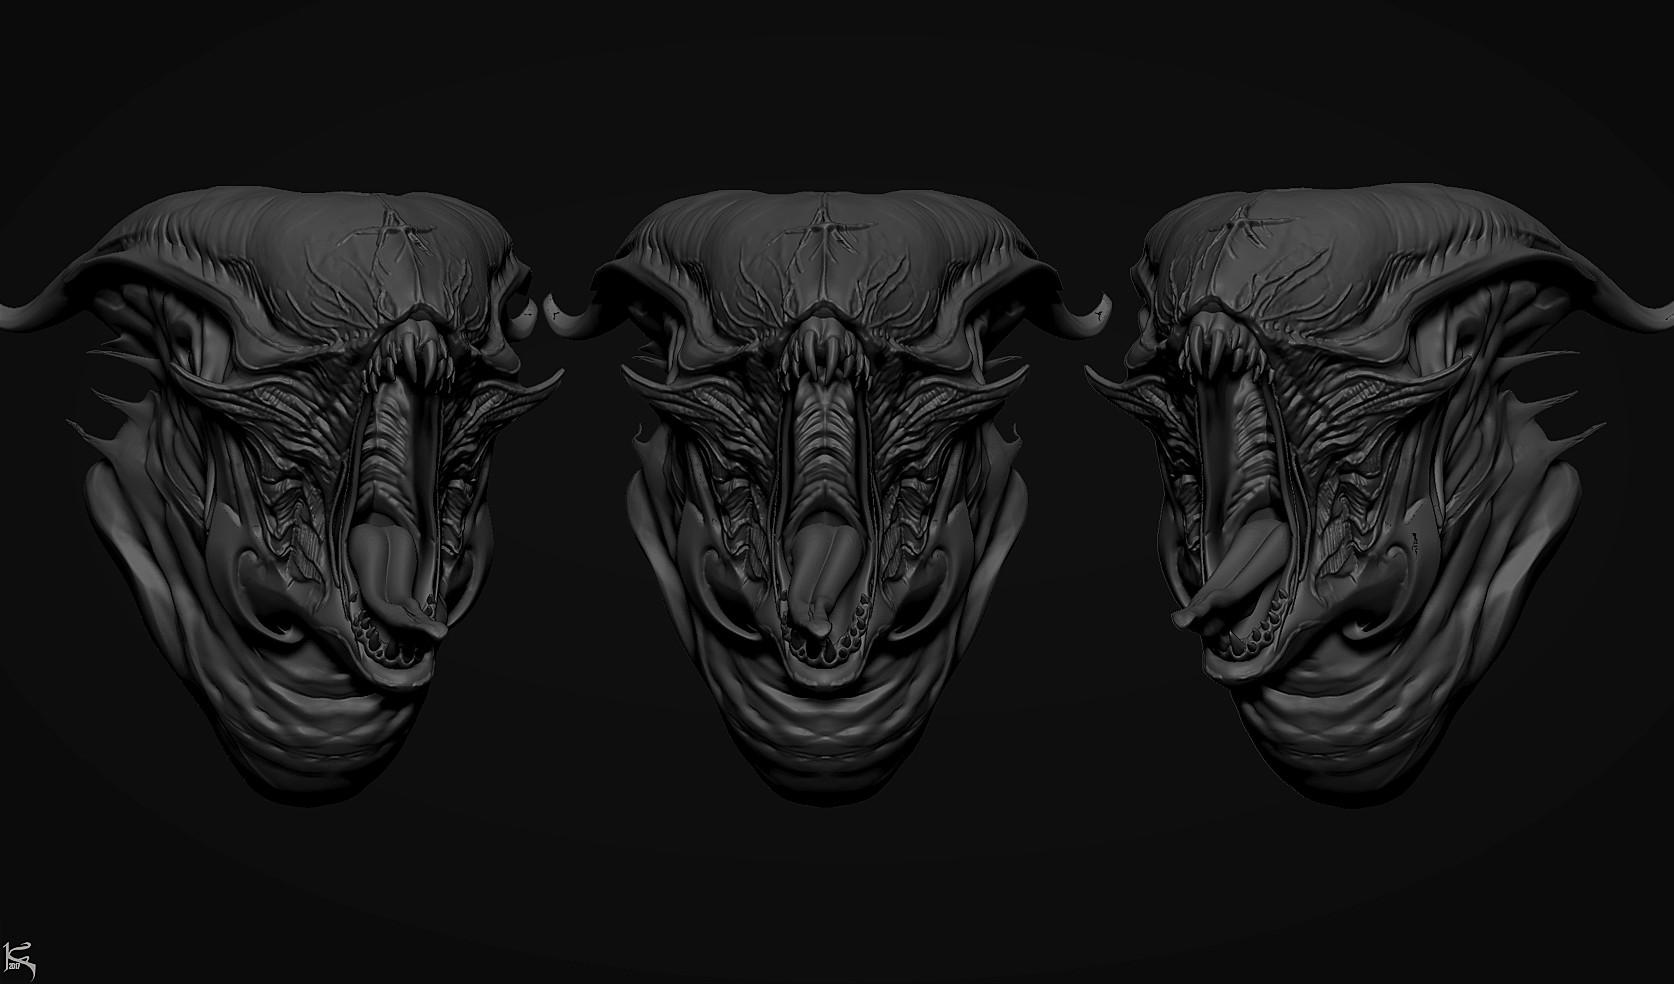 kenny-carmody-creature60-zbrush-screengrab-1002.jpg